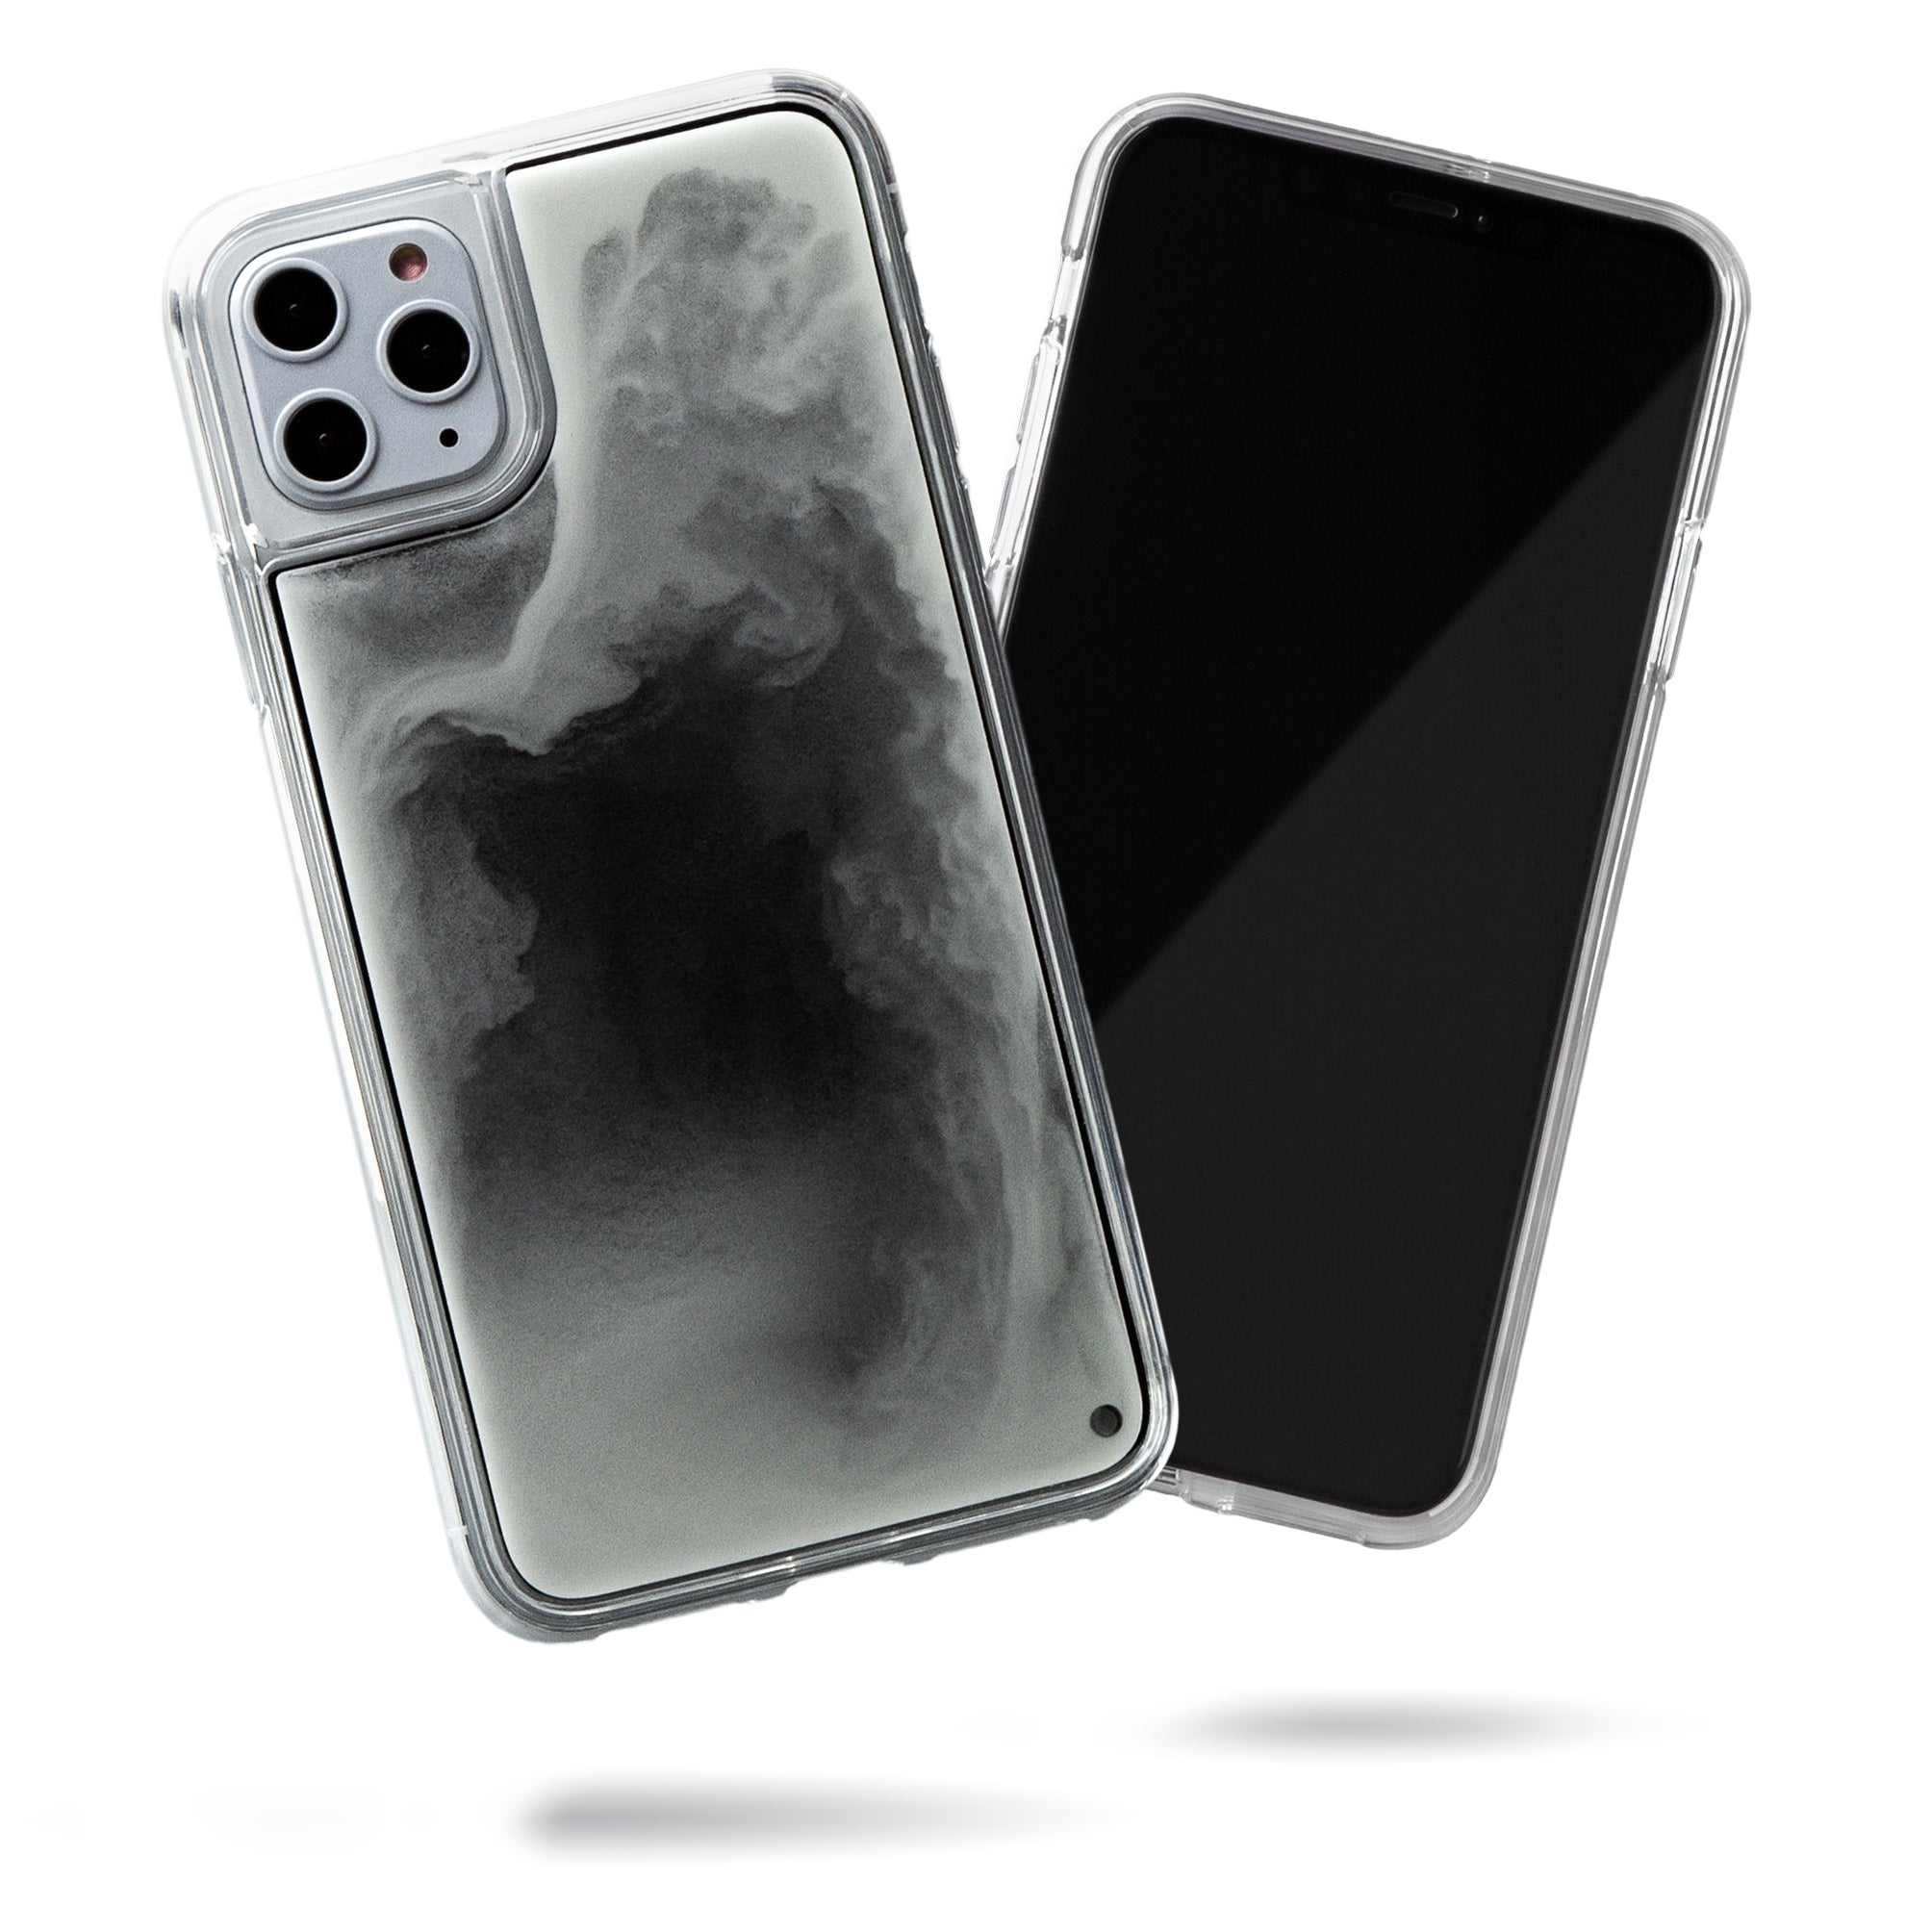 Neon Sand iPhone 11 Pro Max Case - Hi Contrast Black n White